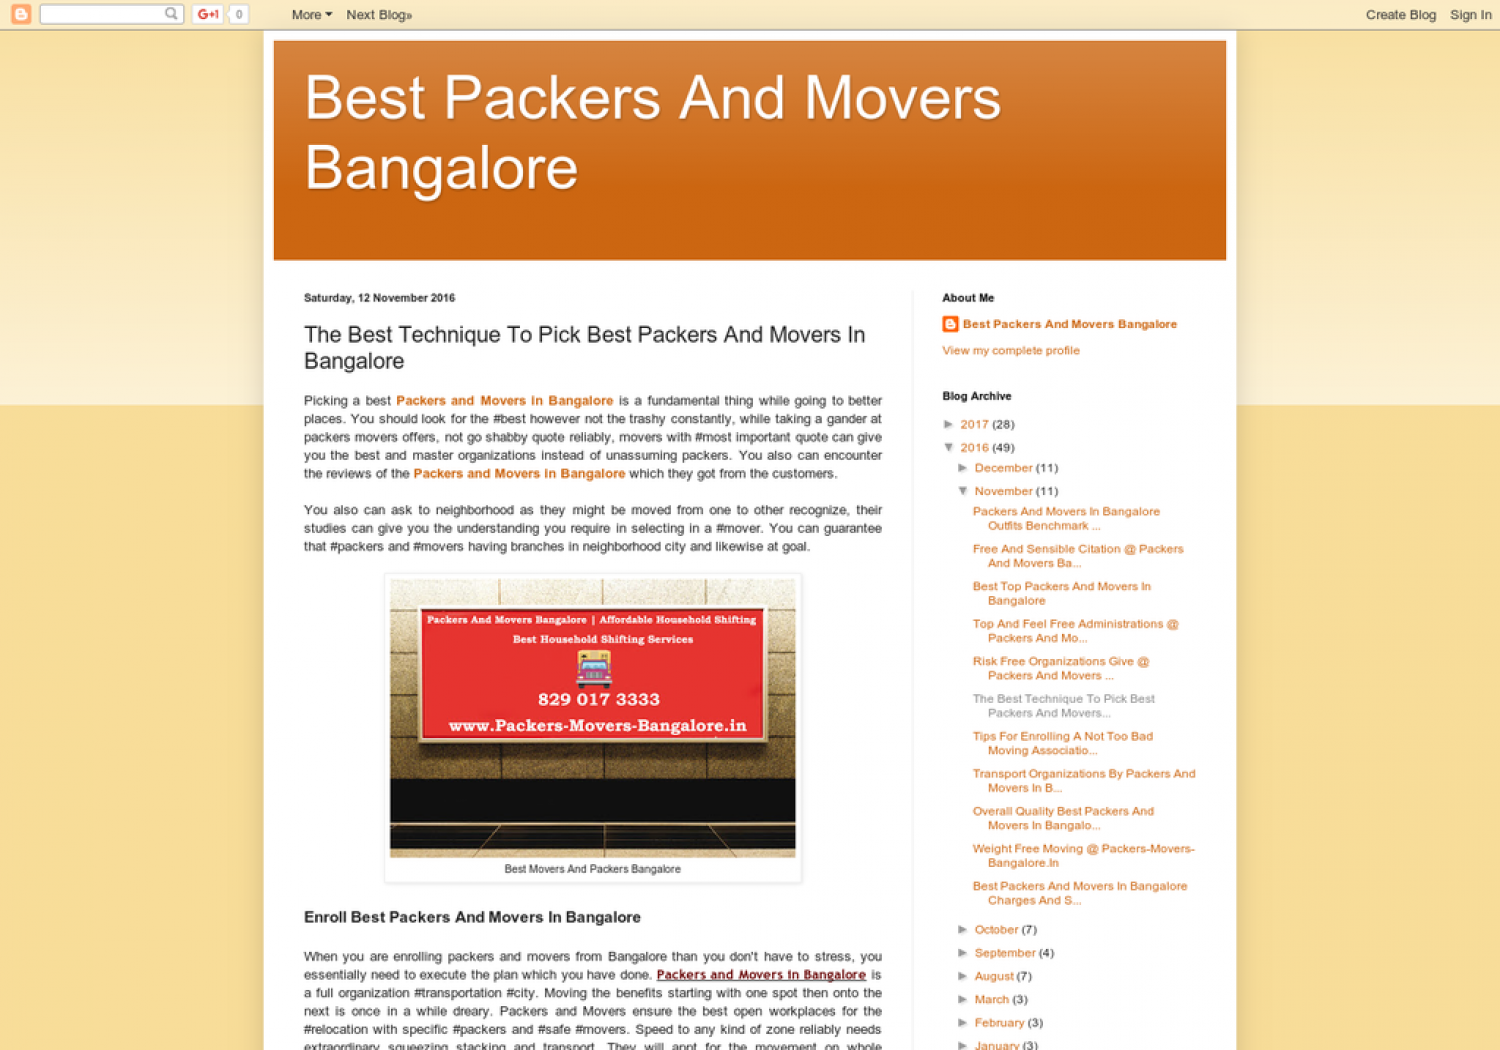 The Best Technique To Pick Best Packers And Movers In Bangalore Infographic